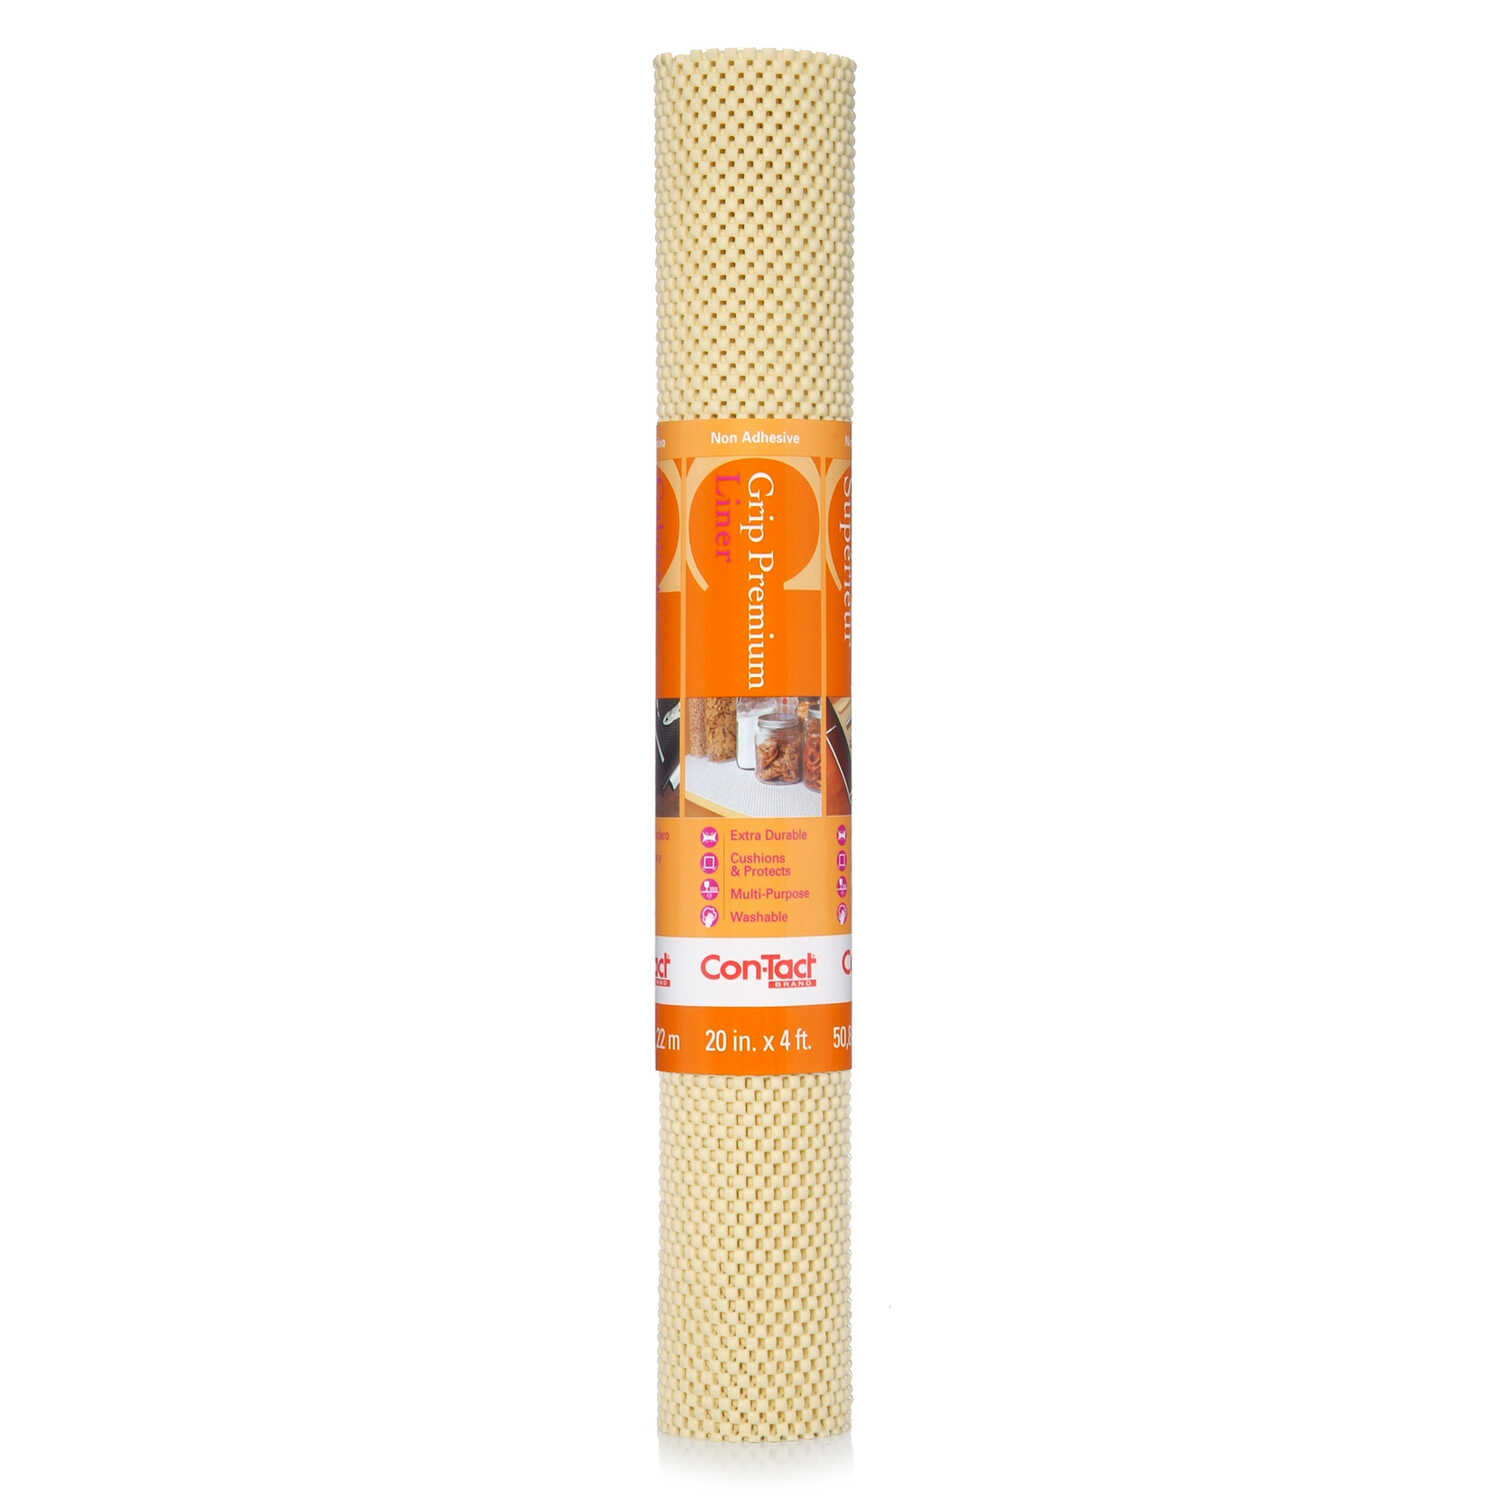 Con-Tact  Grip Premium  4 ft. L x 20 in. W Almond  Non-Adhesive  Shelf Liner